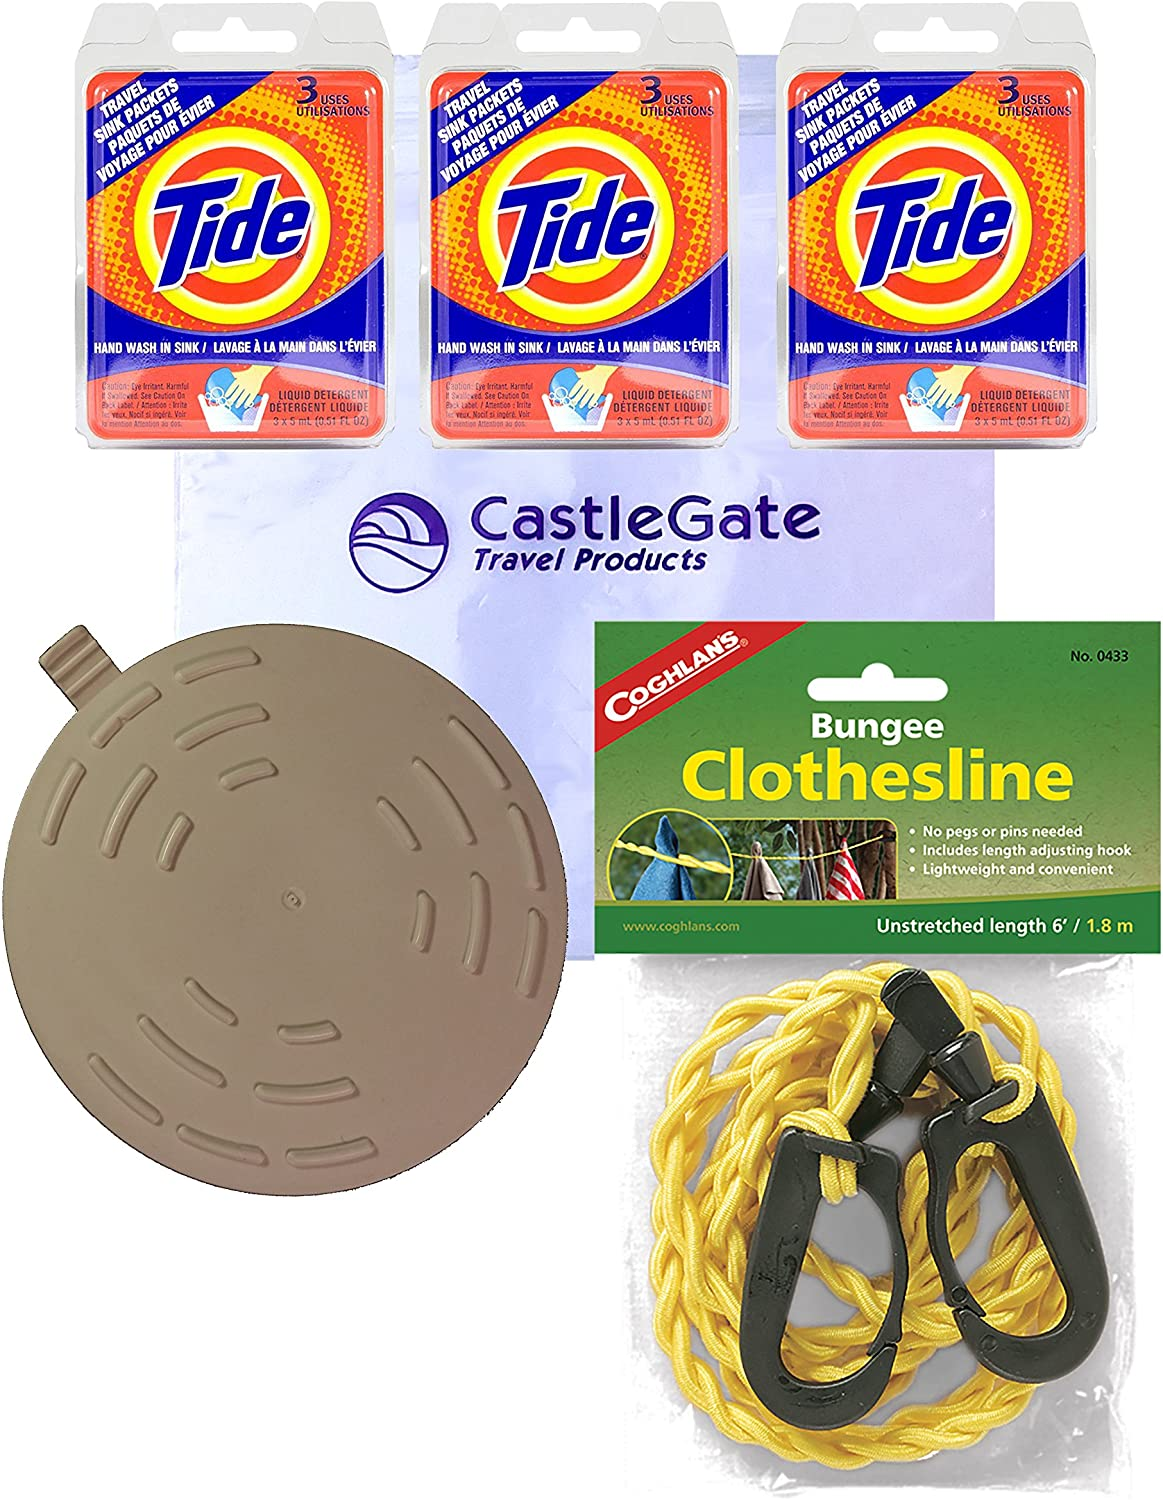 Premium Travel Laundry Kit: Tide Liquid Sink Packets, Drain Stopper and Coghlan's Travel Size Bungee Clothesline